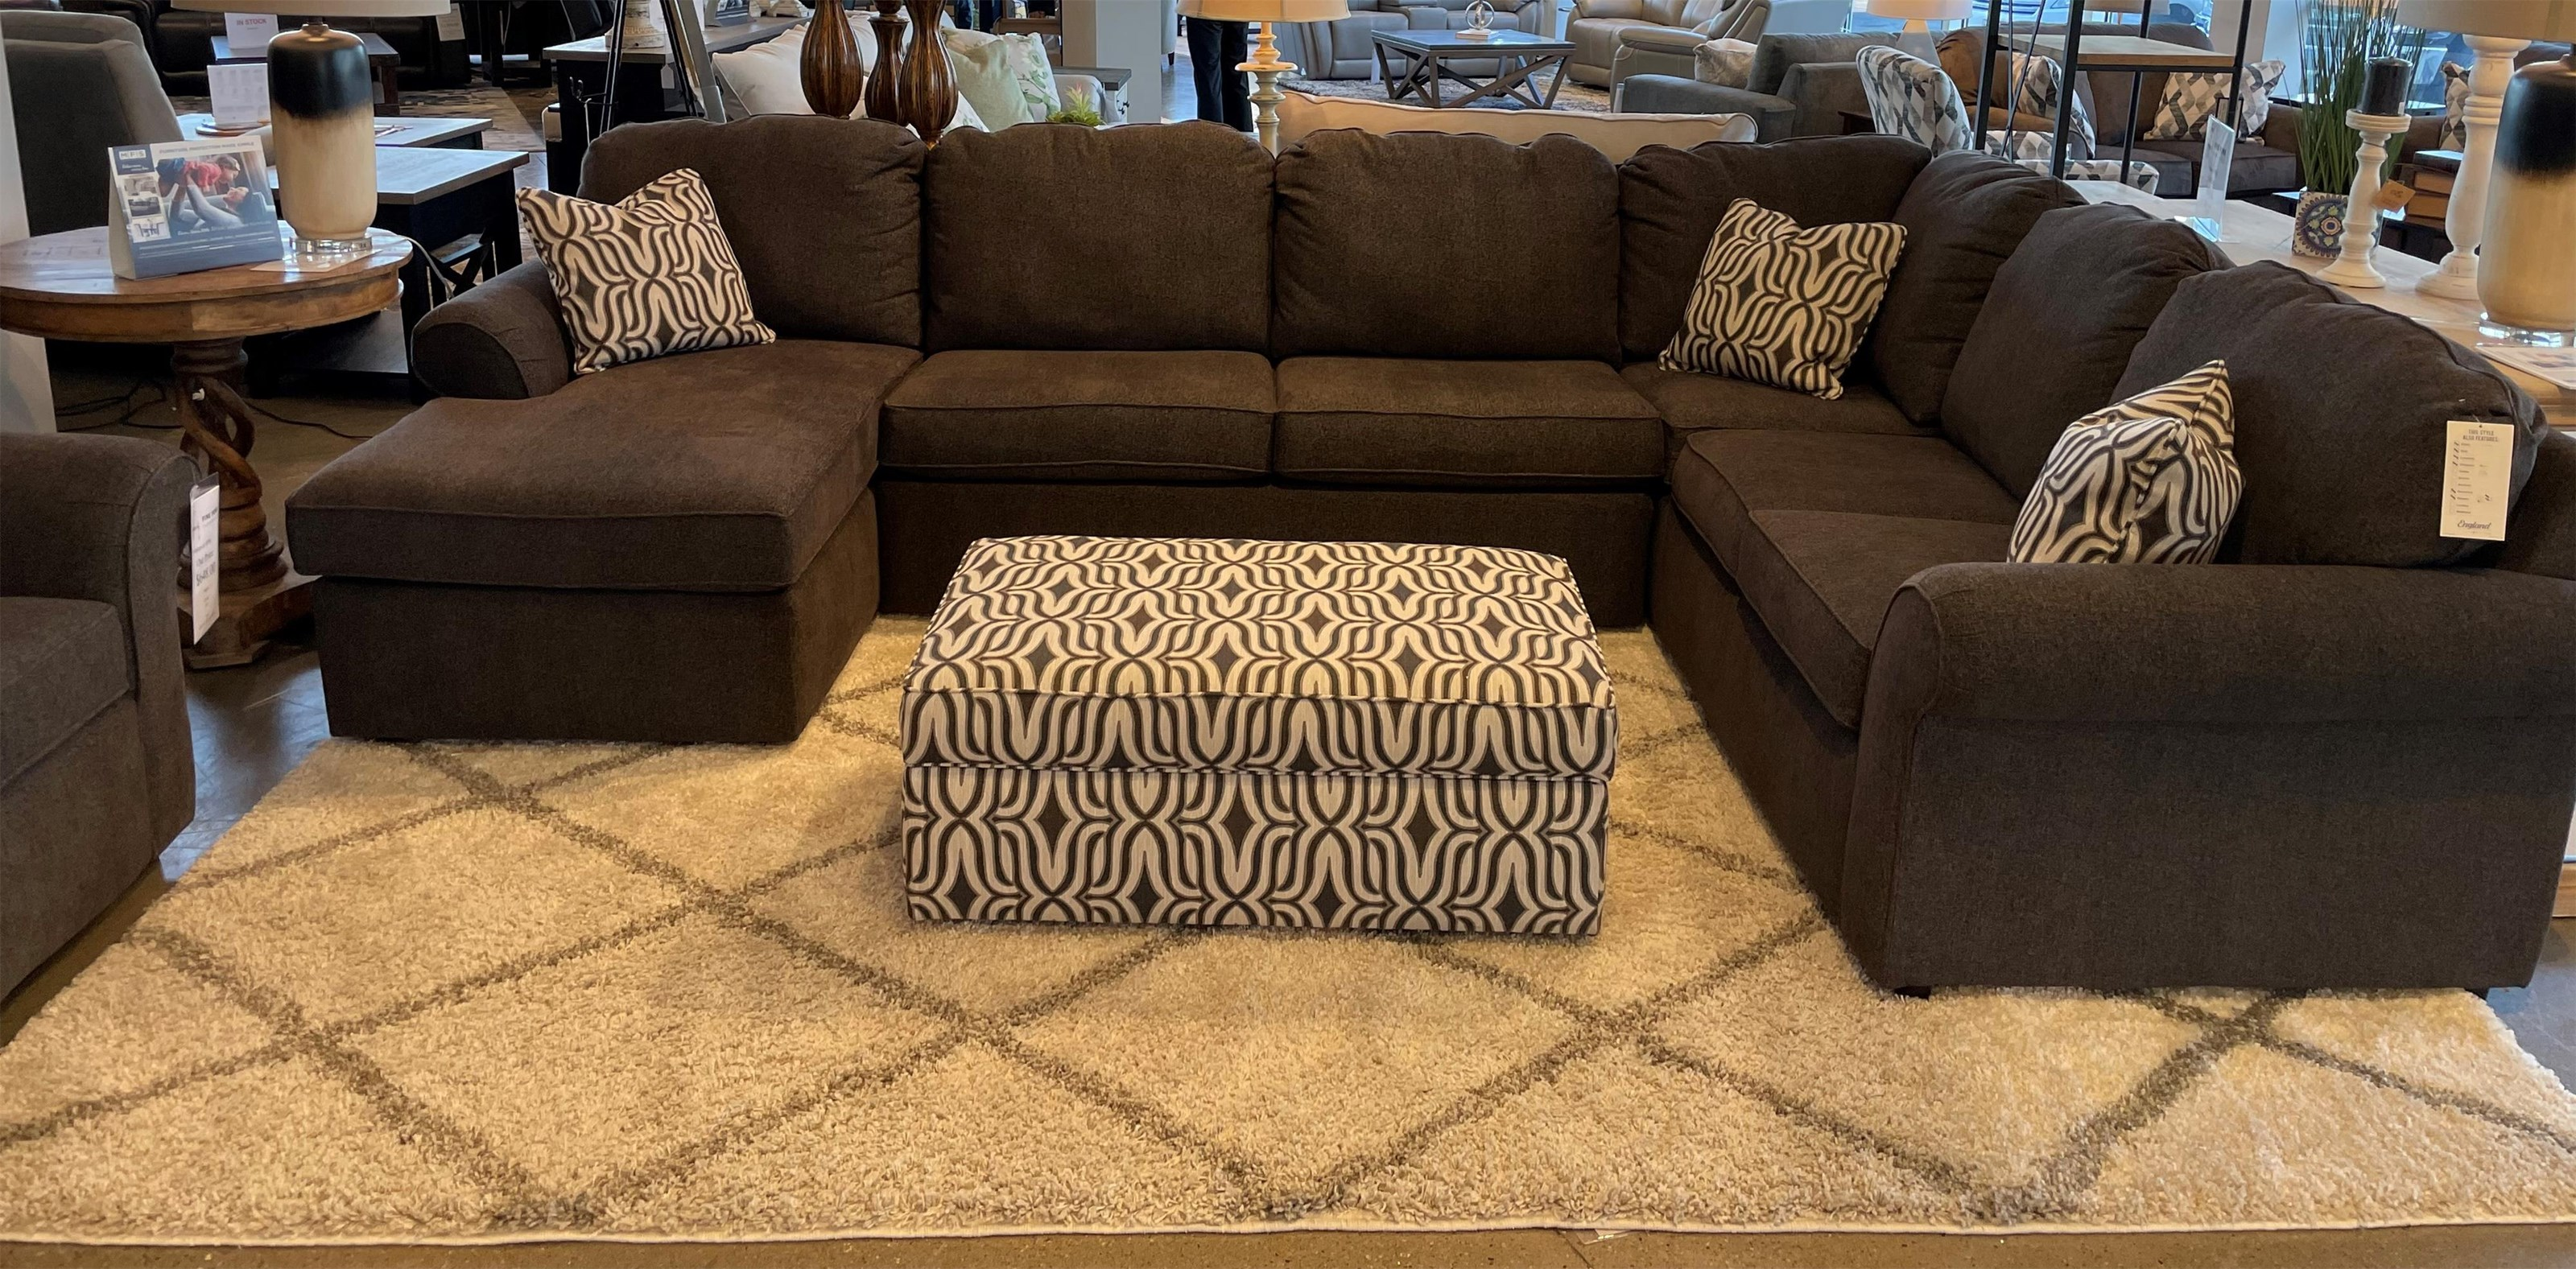 Malibu 5-6 Seat (left side) Chaise Sectional by England at Fine Home Furnishings